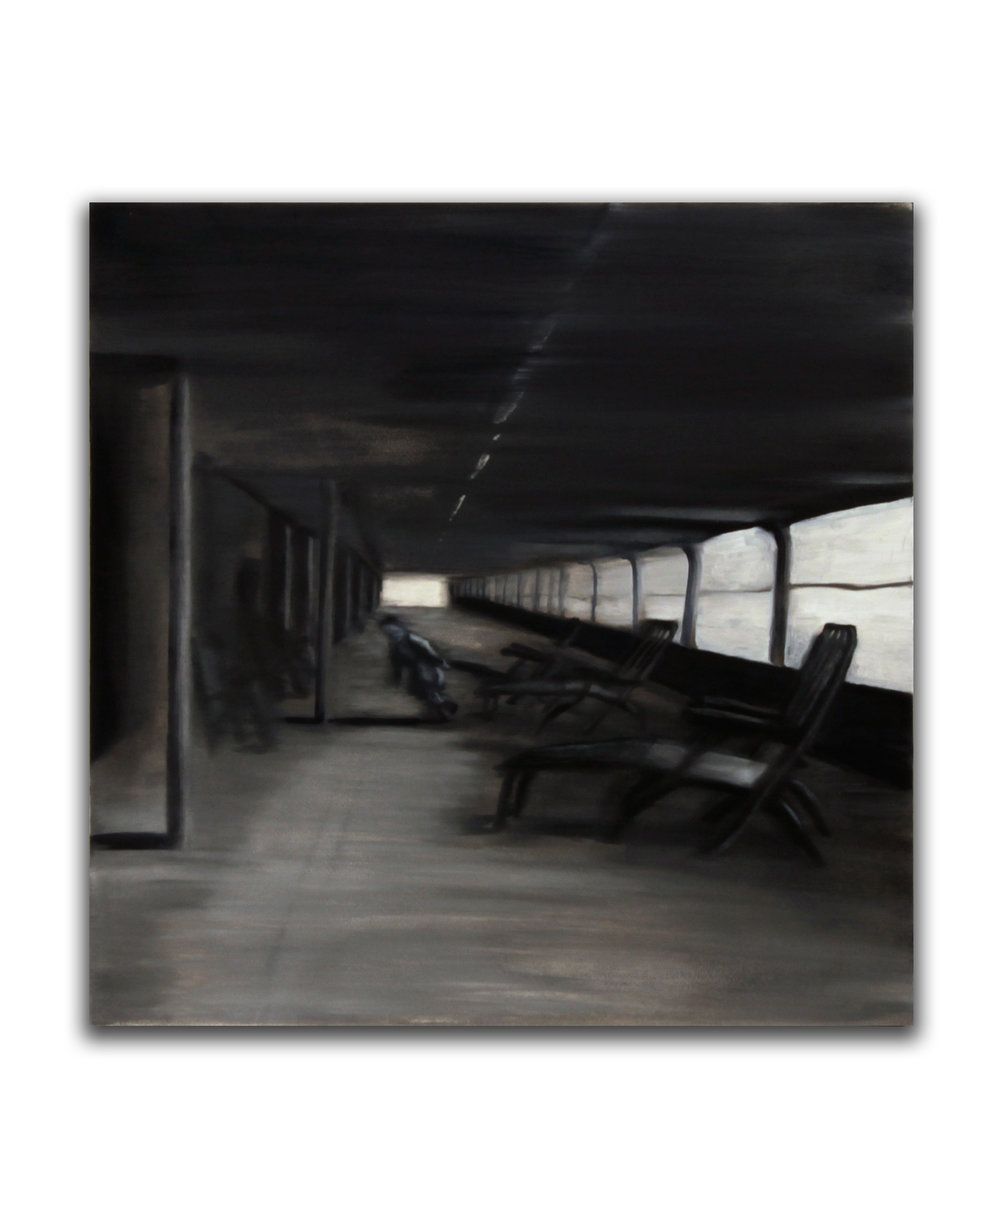 Rearranging Deckchairs. Oil on panel. 12 x 12 inches. 2009